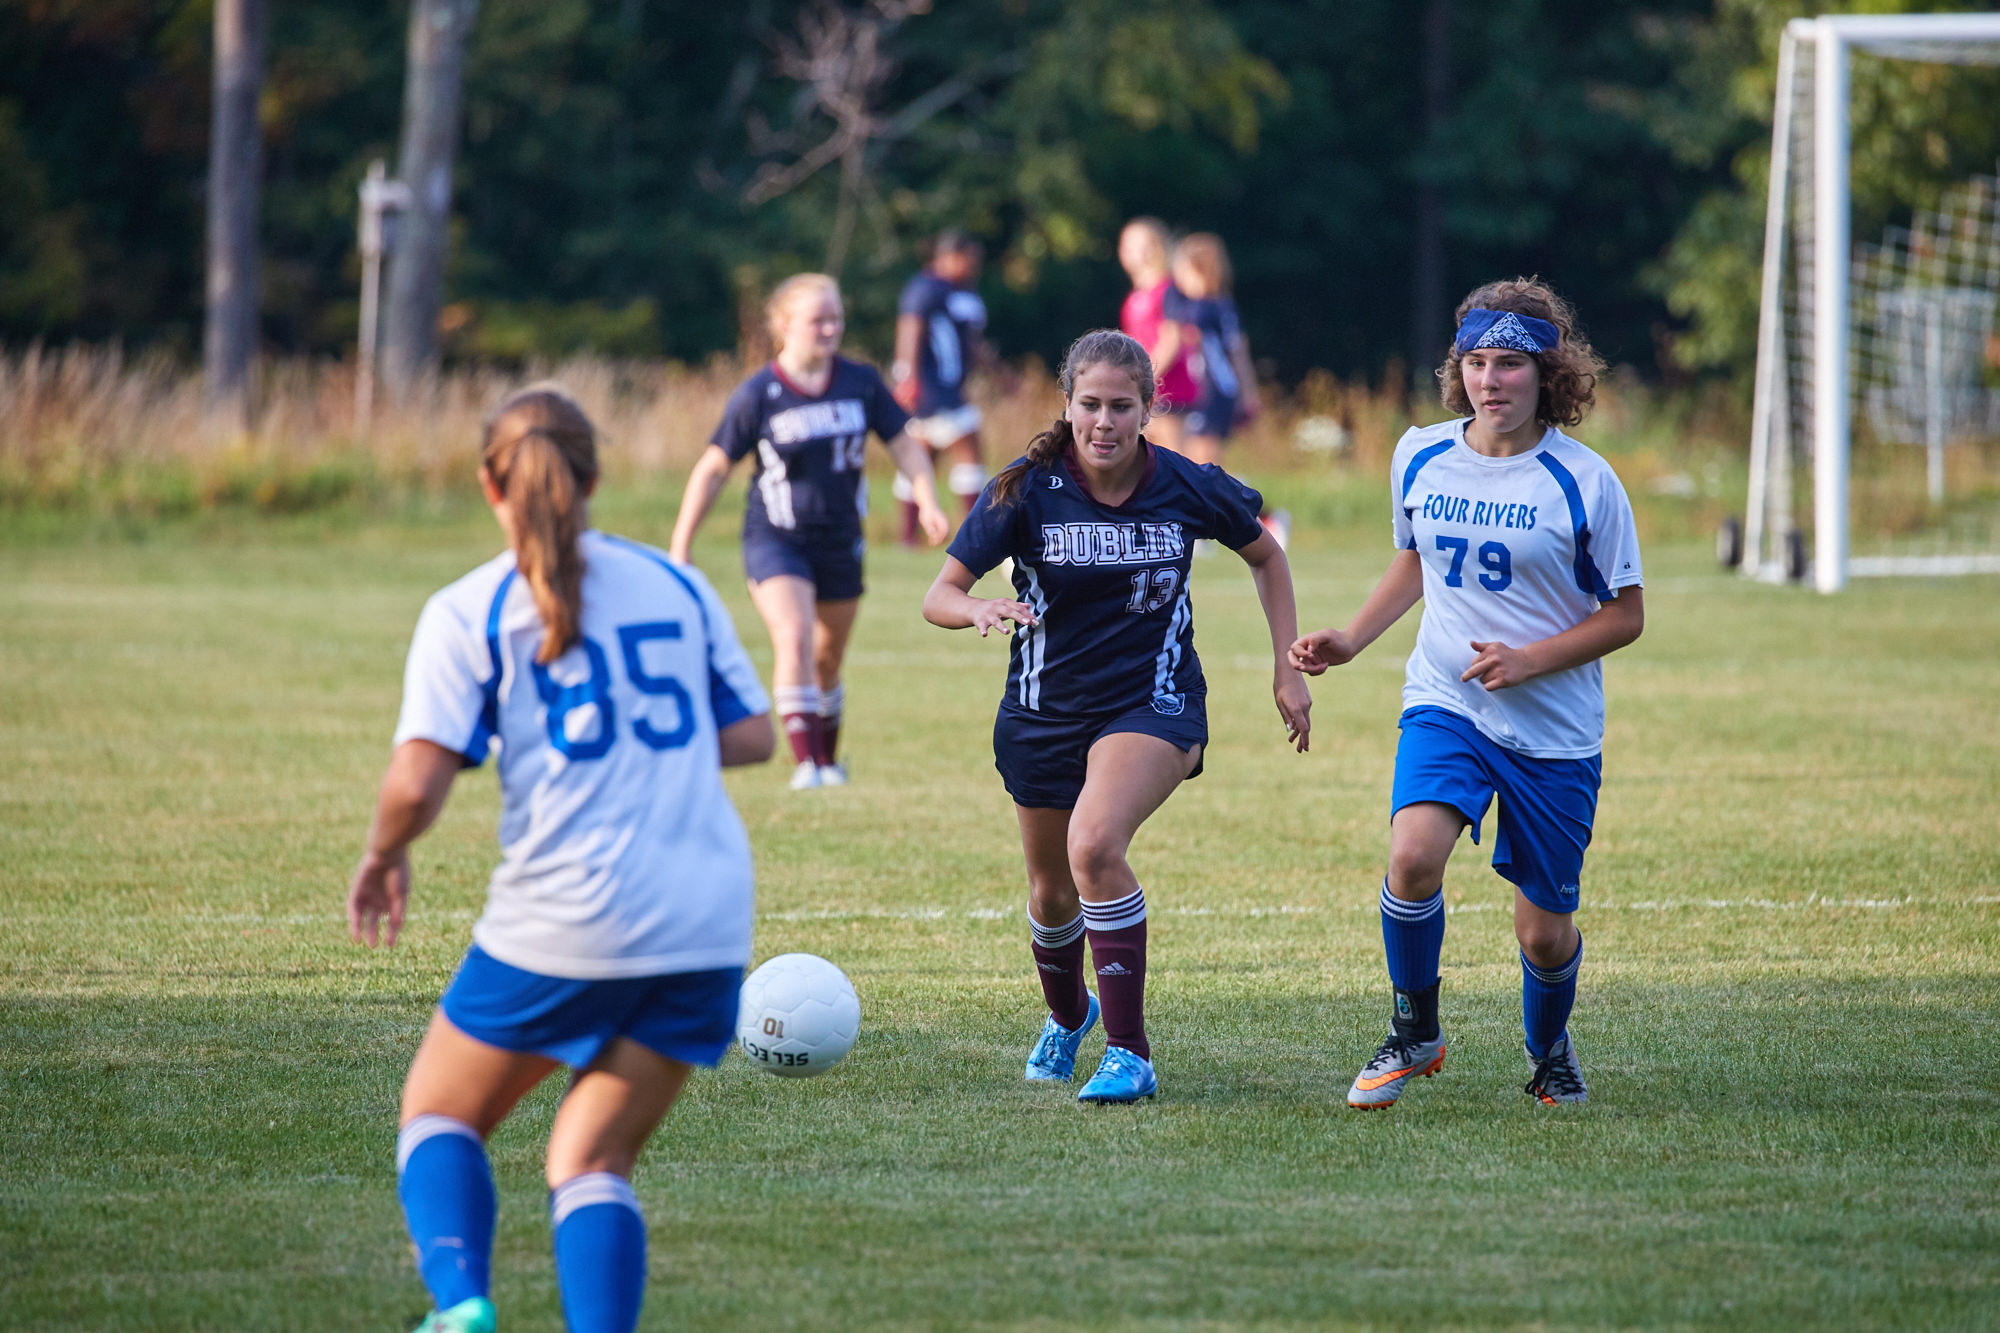 Girls Varsity Soccer vs. Four Rivers Charter Public School - September 23, 2016 - 41609- 000147.jpg